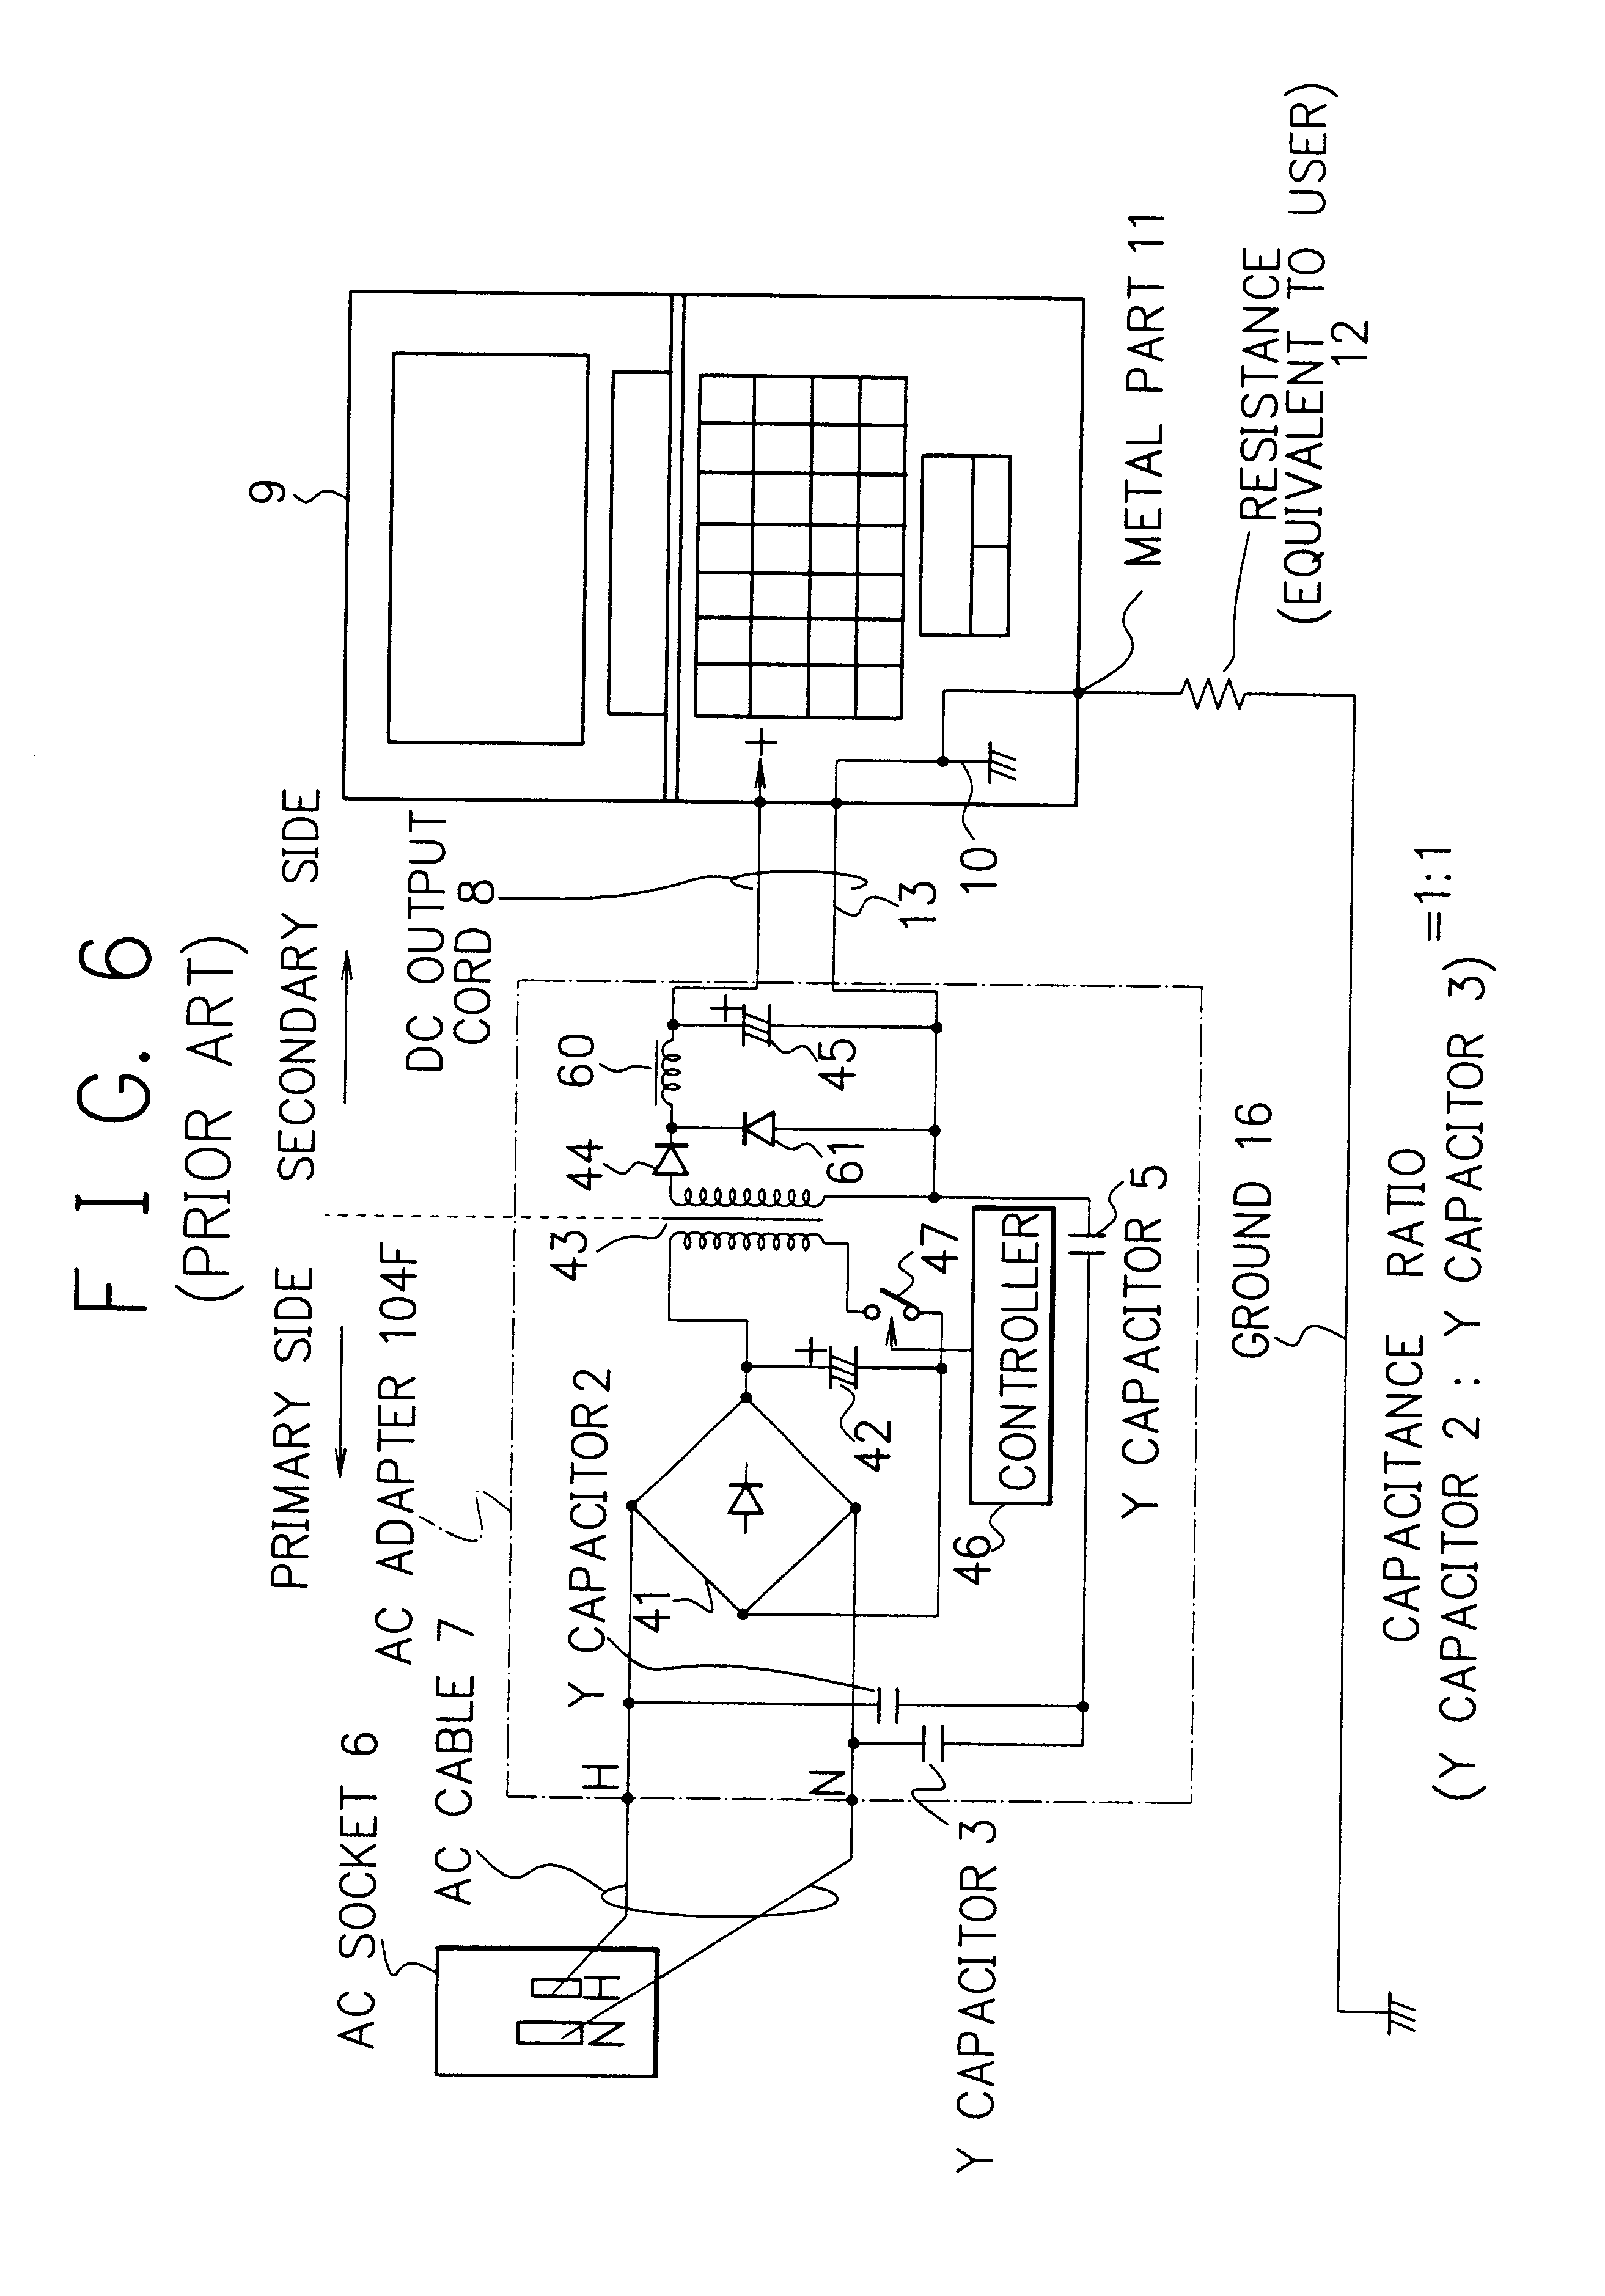 Us6603317b2 Leakage Current Reduction Circuit And Power Supply Example Smoothing Capacitor Employing The Same Google Patents